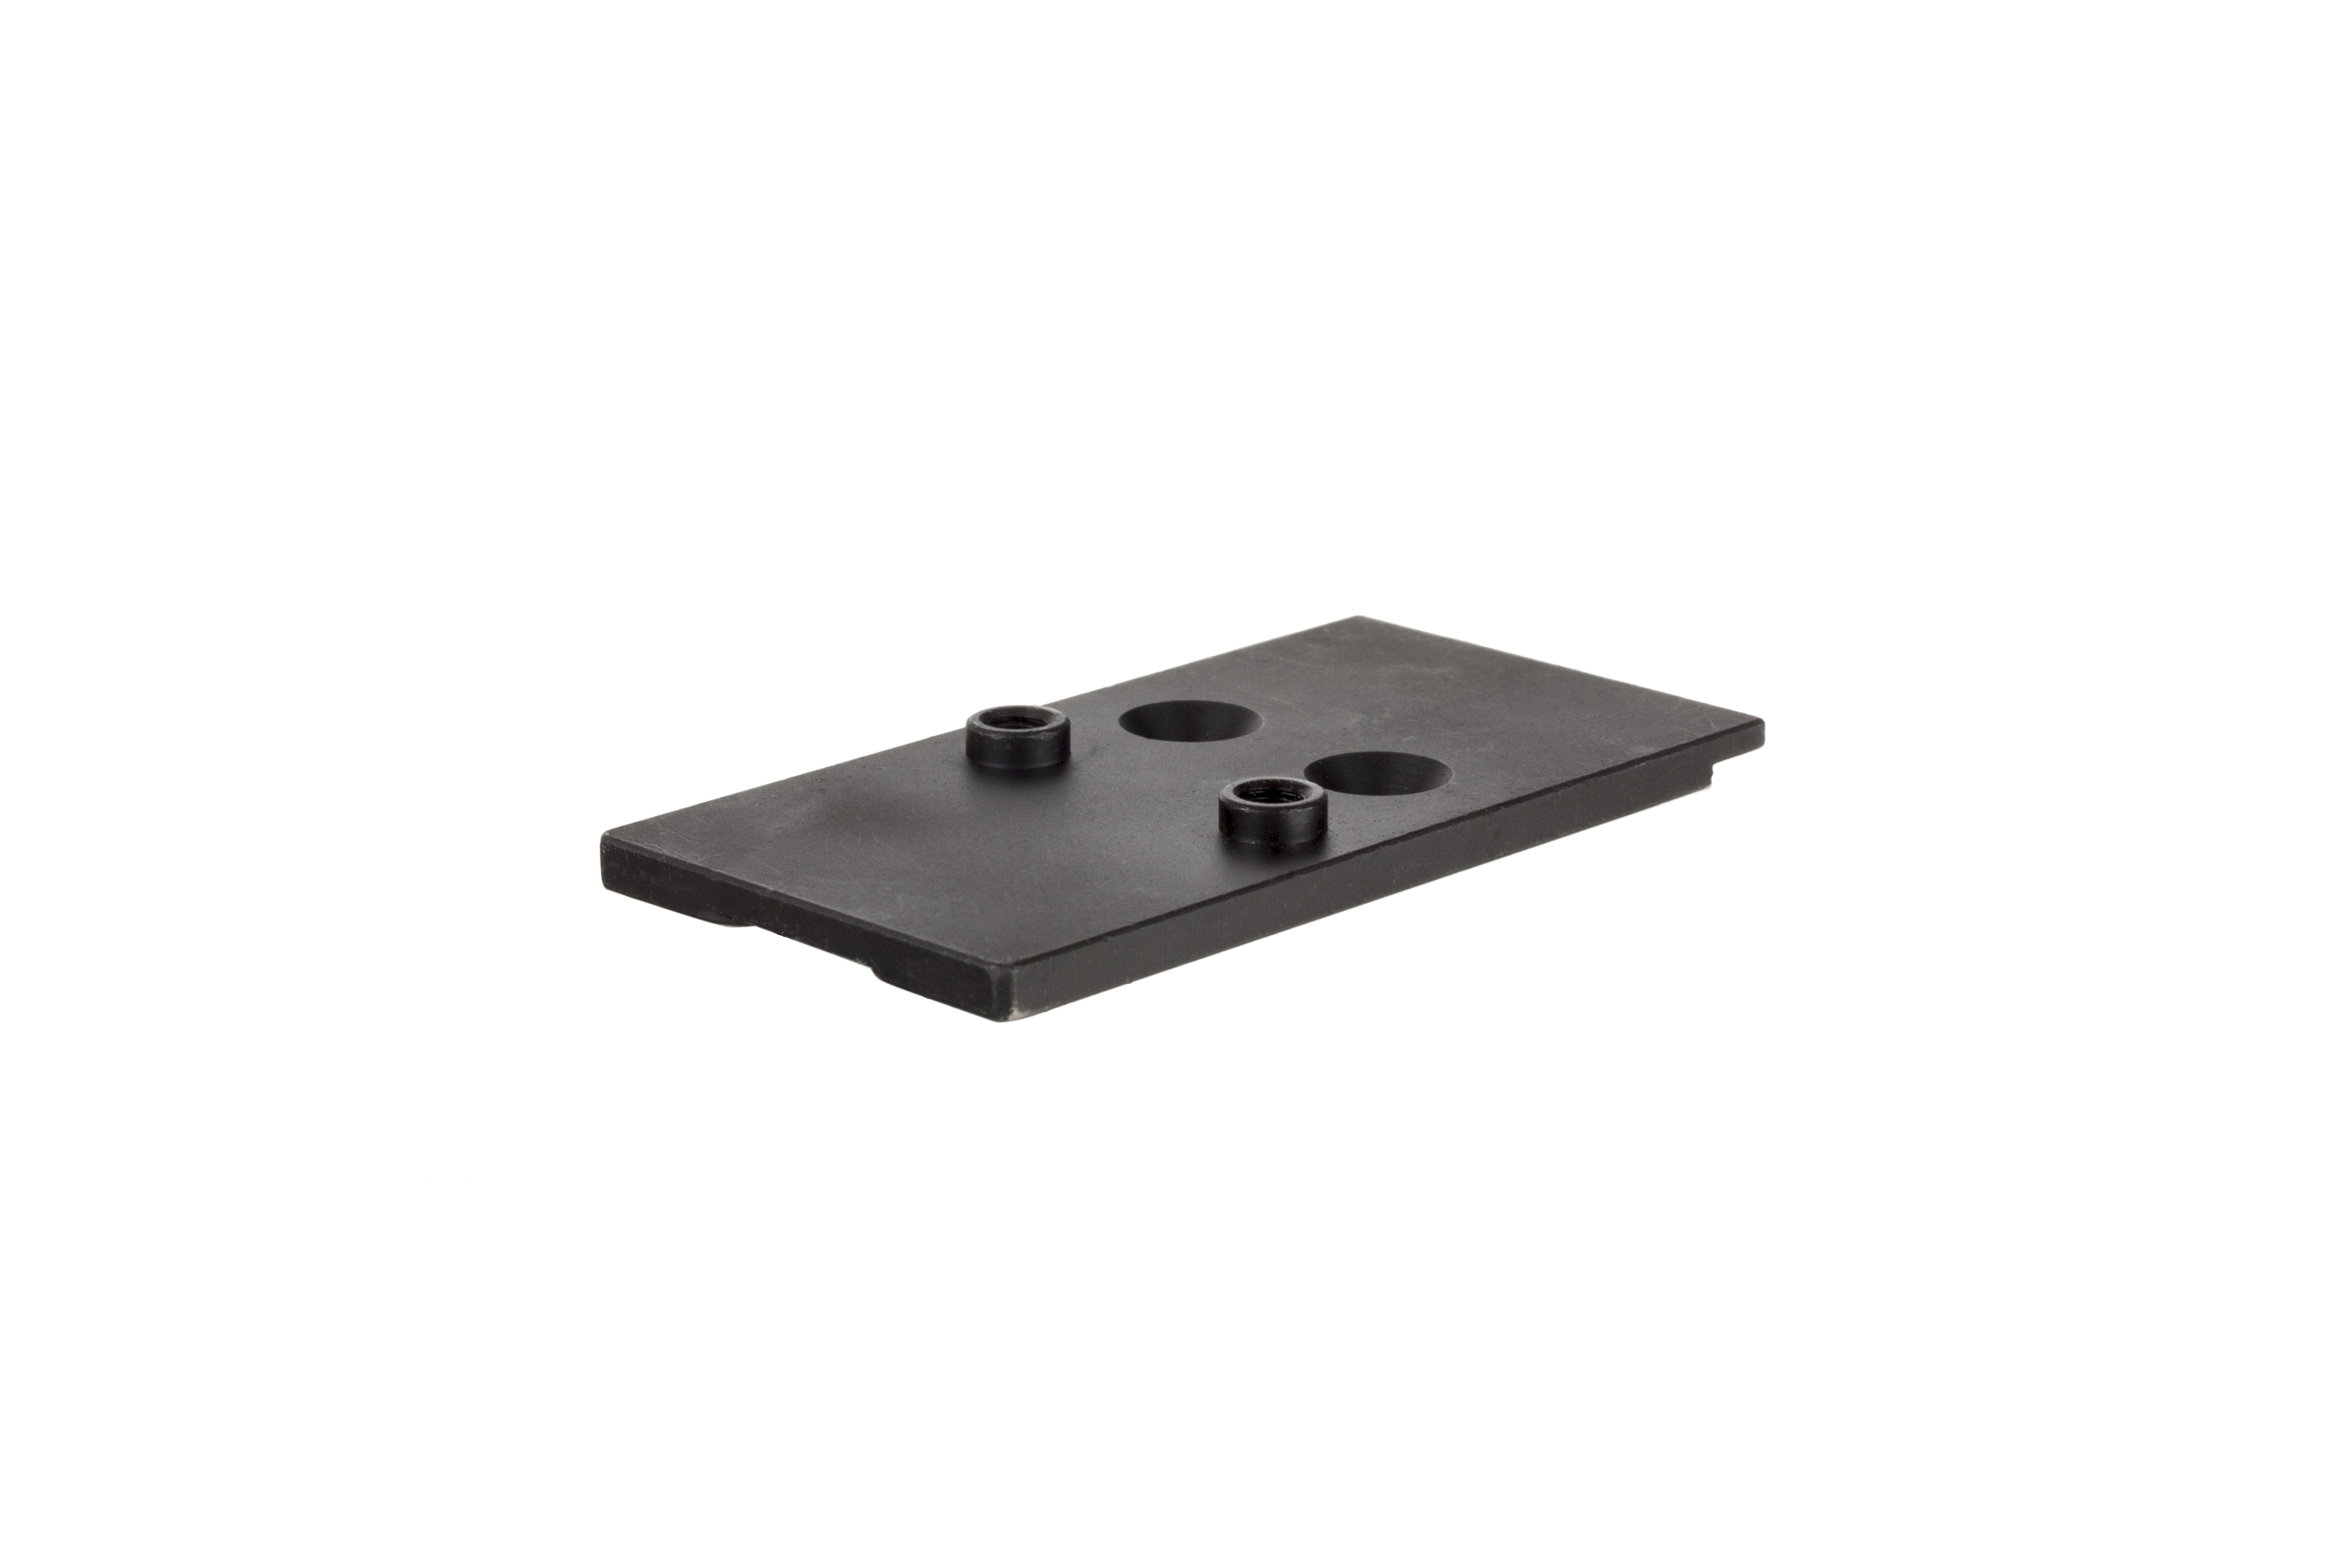 Trijicon RMR®cc Pistol Adapter Plate for Full Size Glock MOS Pistols